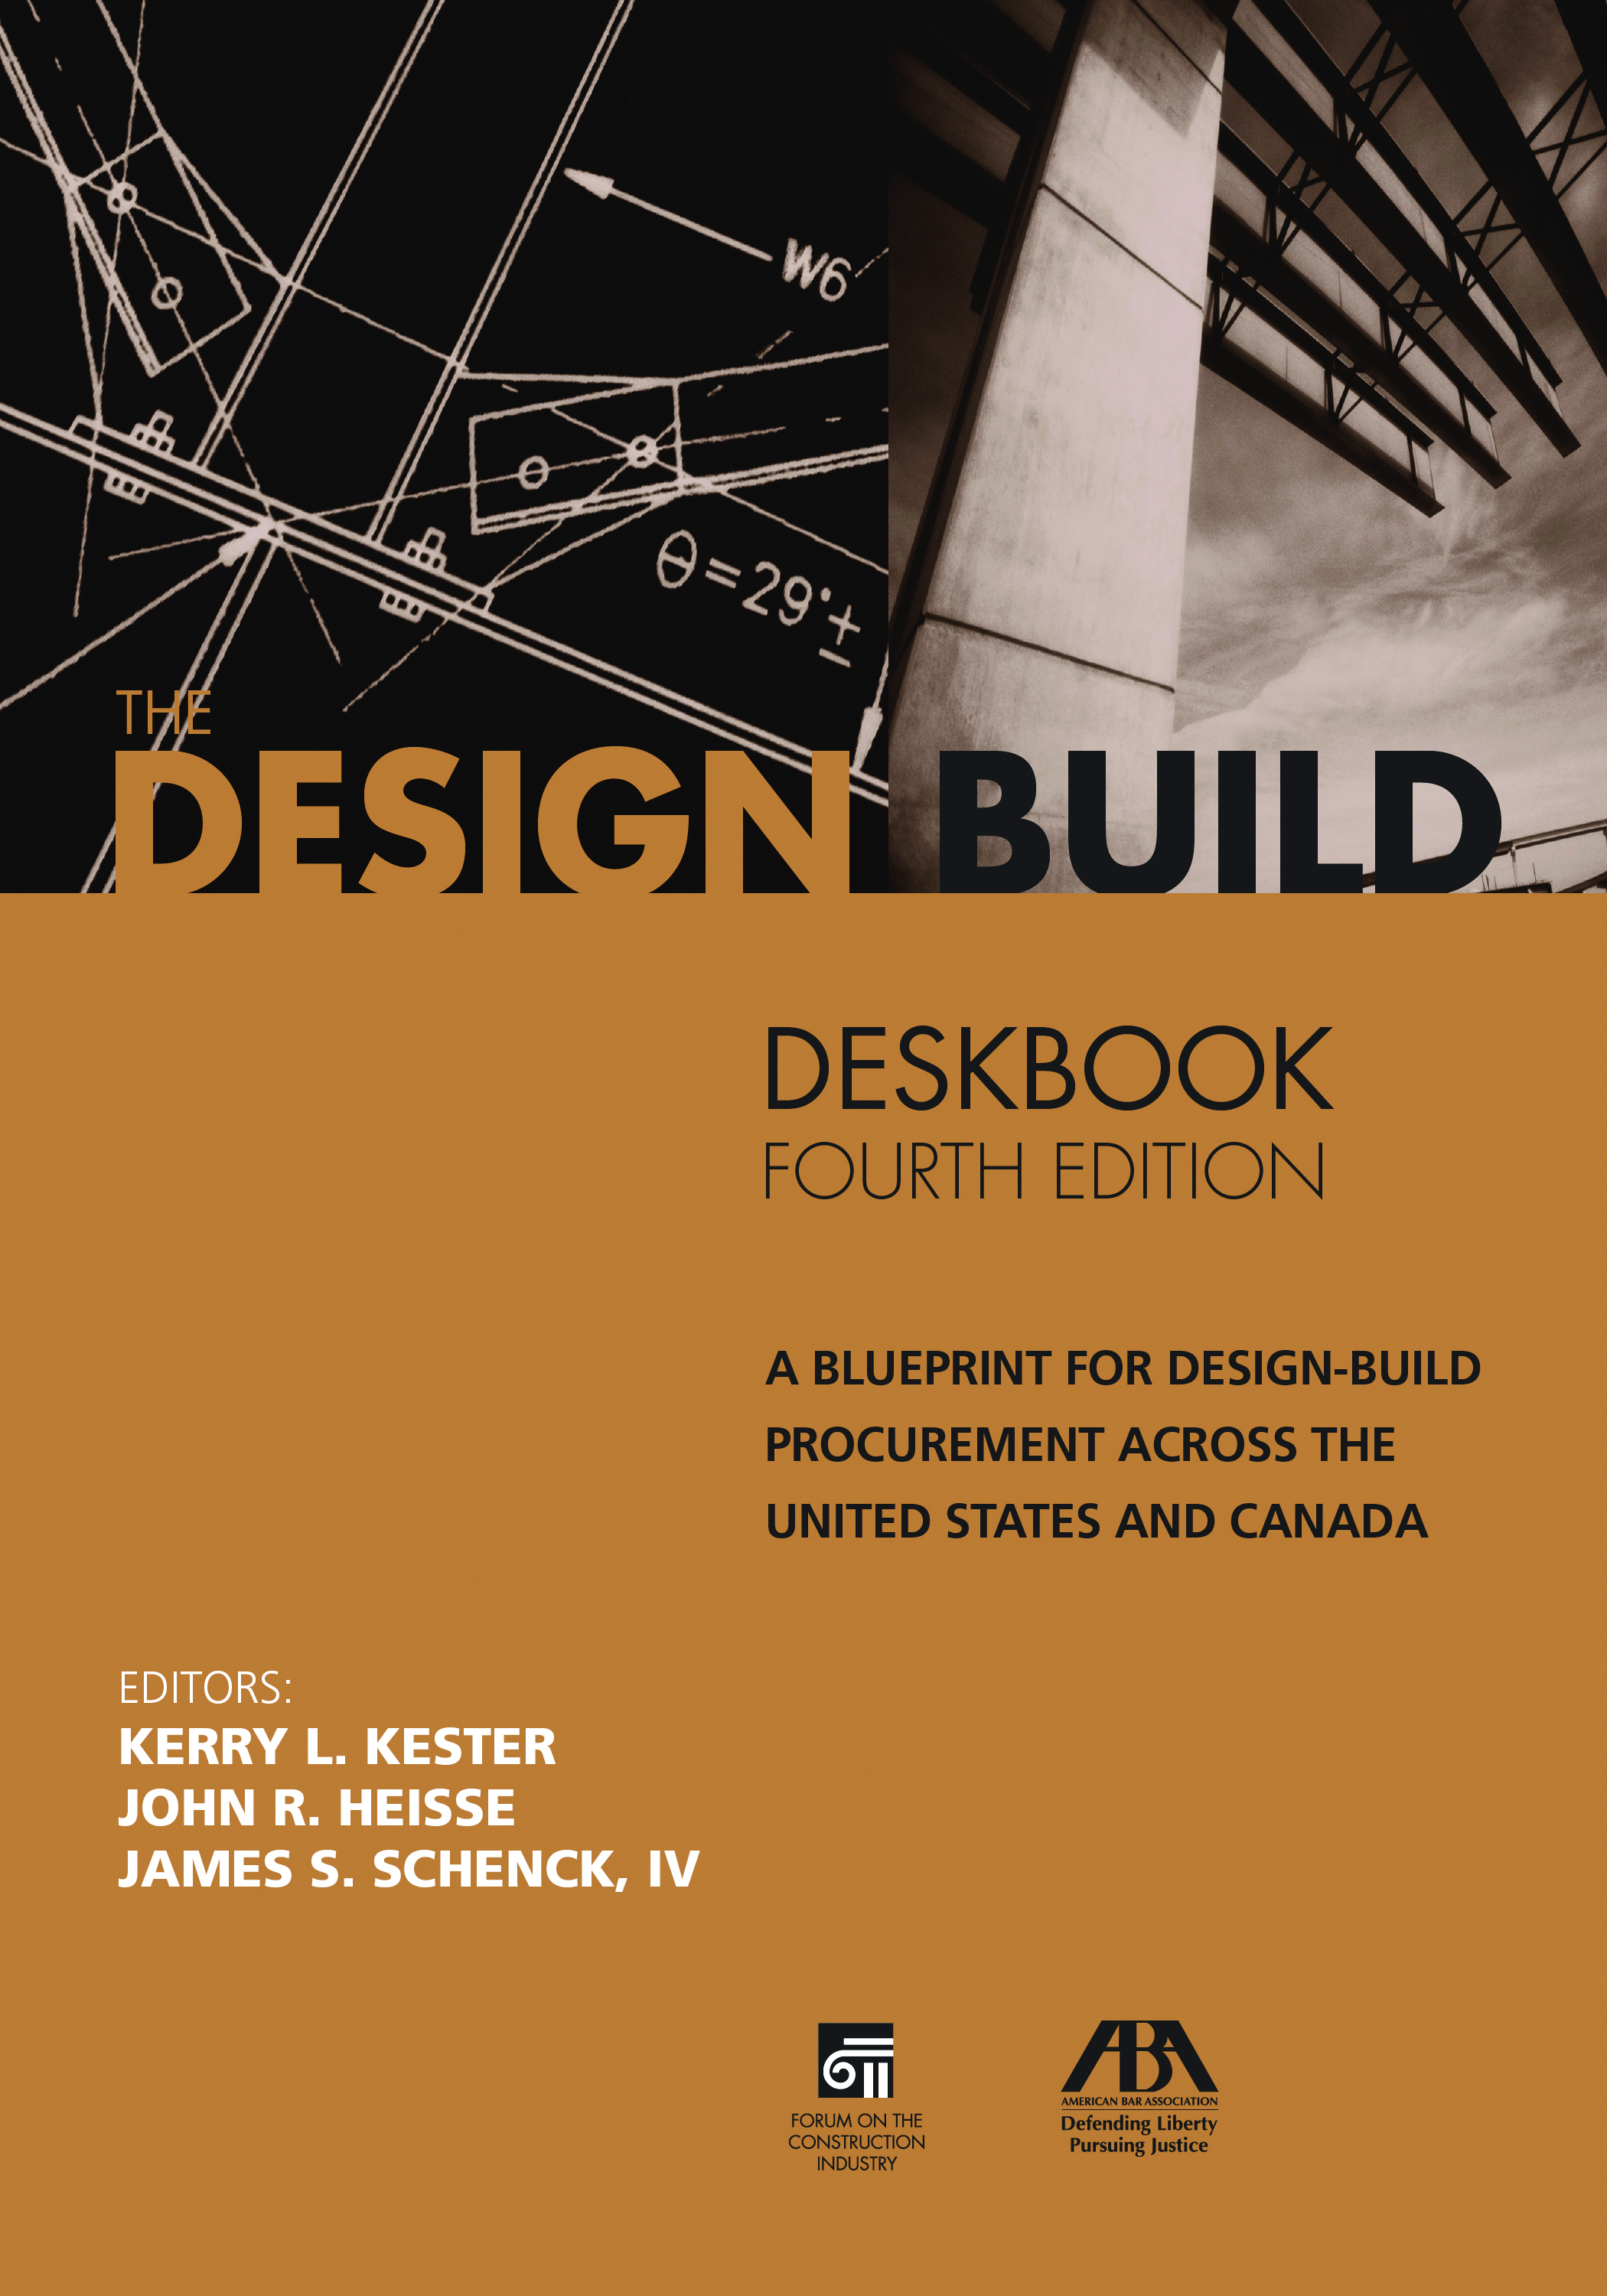 The design build deskbook a blueprint for design build procurement the design build deskbook a blueprint for design build procurement across the united states and canada fourth edition malvernweather Choice Image